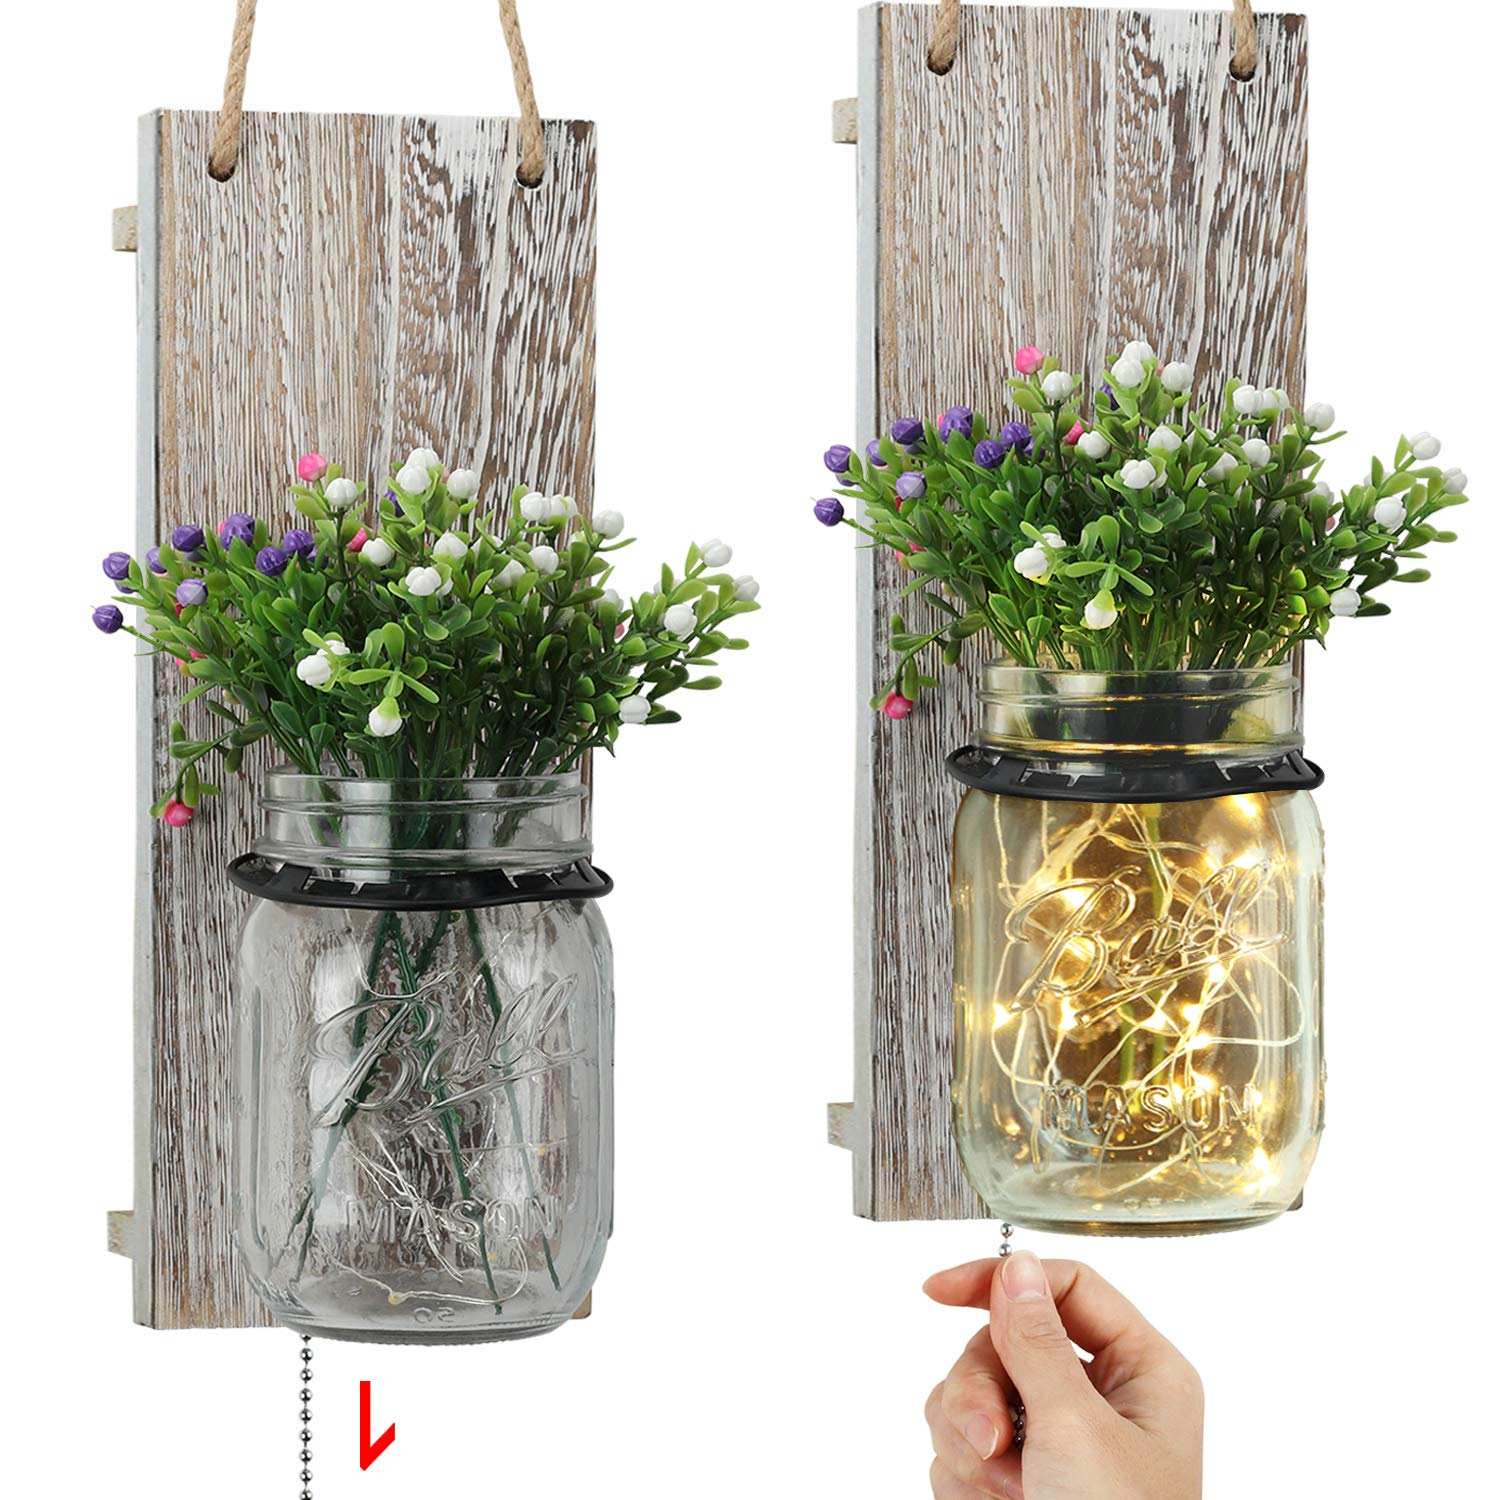 TJ.MOREE Jar Wall Sconces, Vintage Home Decor with Pull Chain Switch, Seasonal Interchangeable Colorful Flowers and LED Strip Lights Design for Farmhouse Home Decoration - Shabby White (Set of 2)